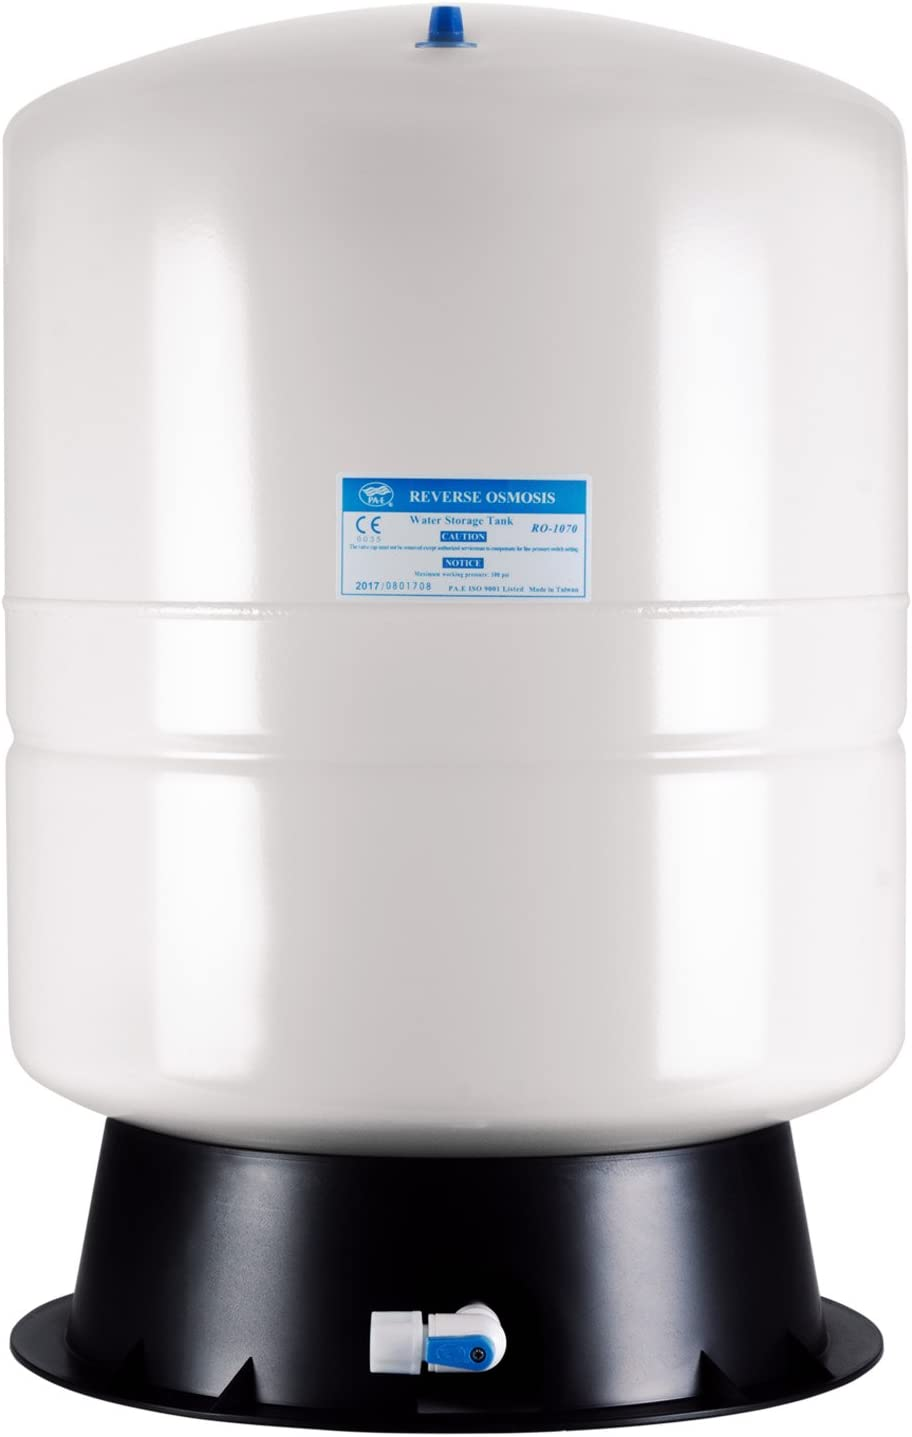 iSpring T11M 11 Gallon Pre-Pressurized Water Storage Reverse Osmosis Systems ro tank, 11 gal, White